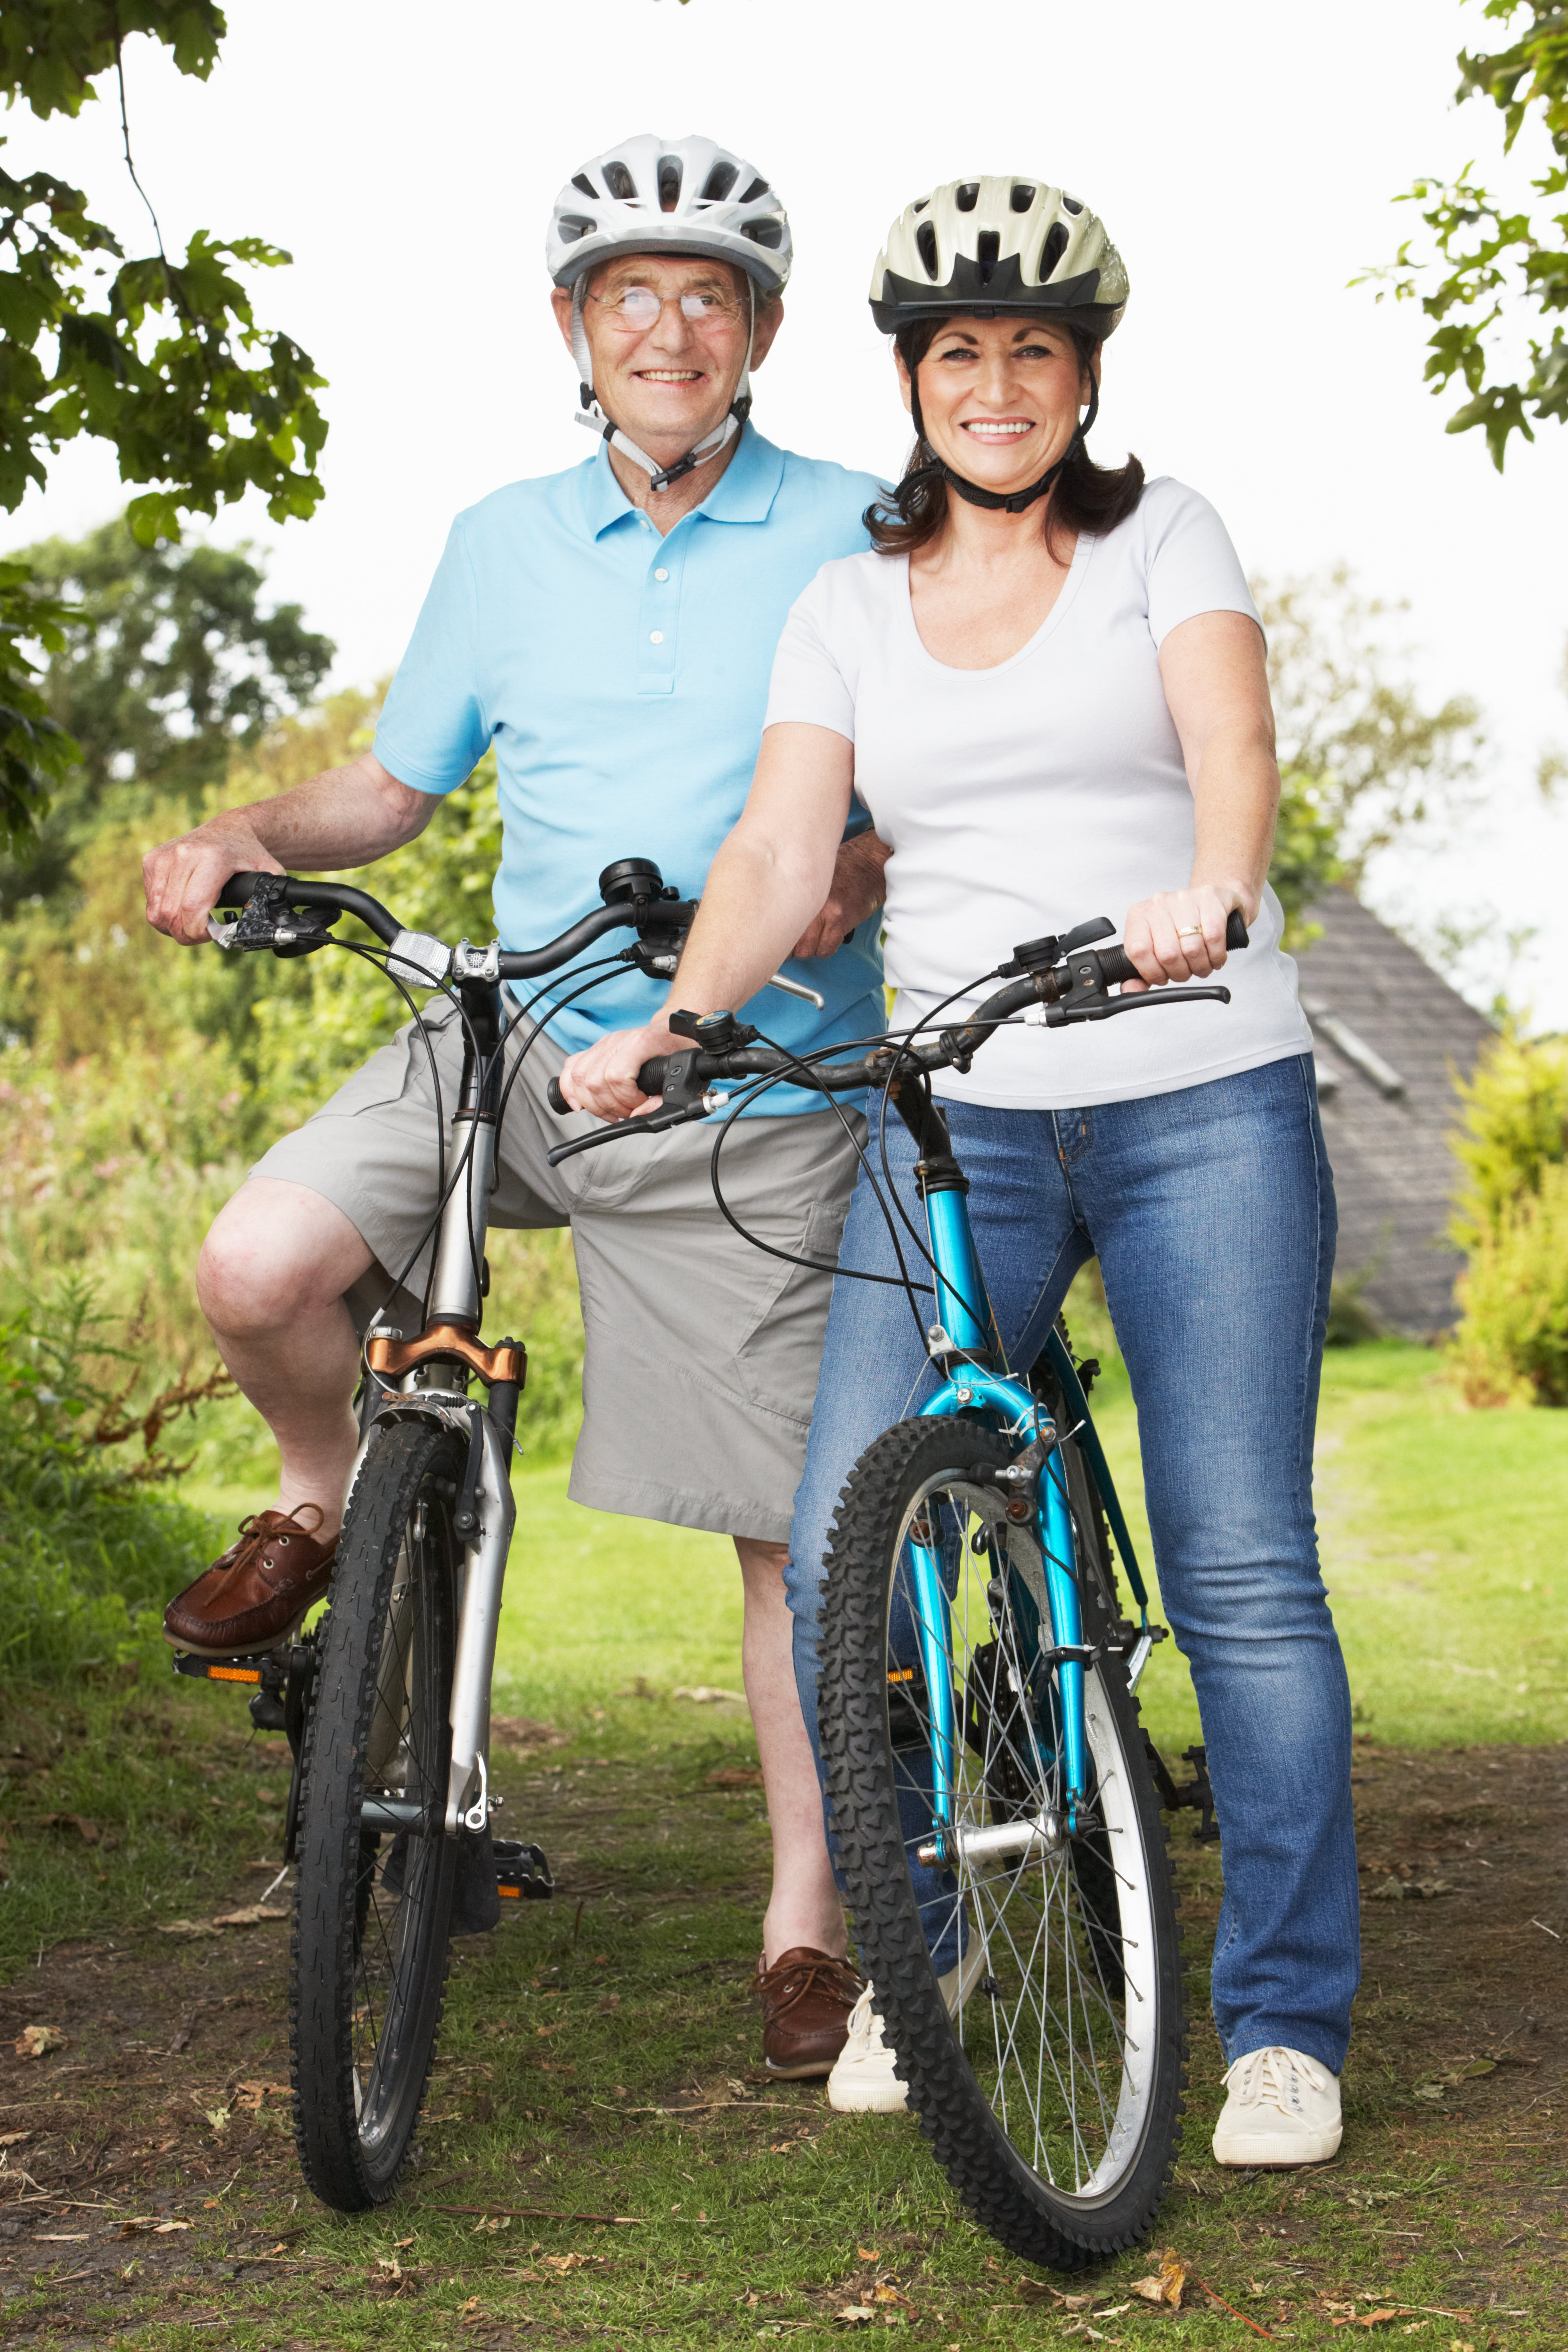 man and woman on bicycles smiling